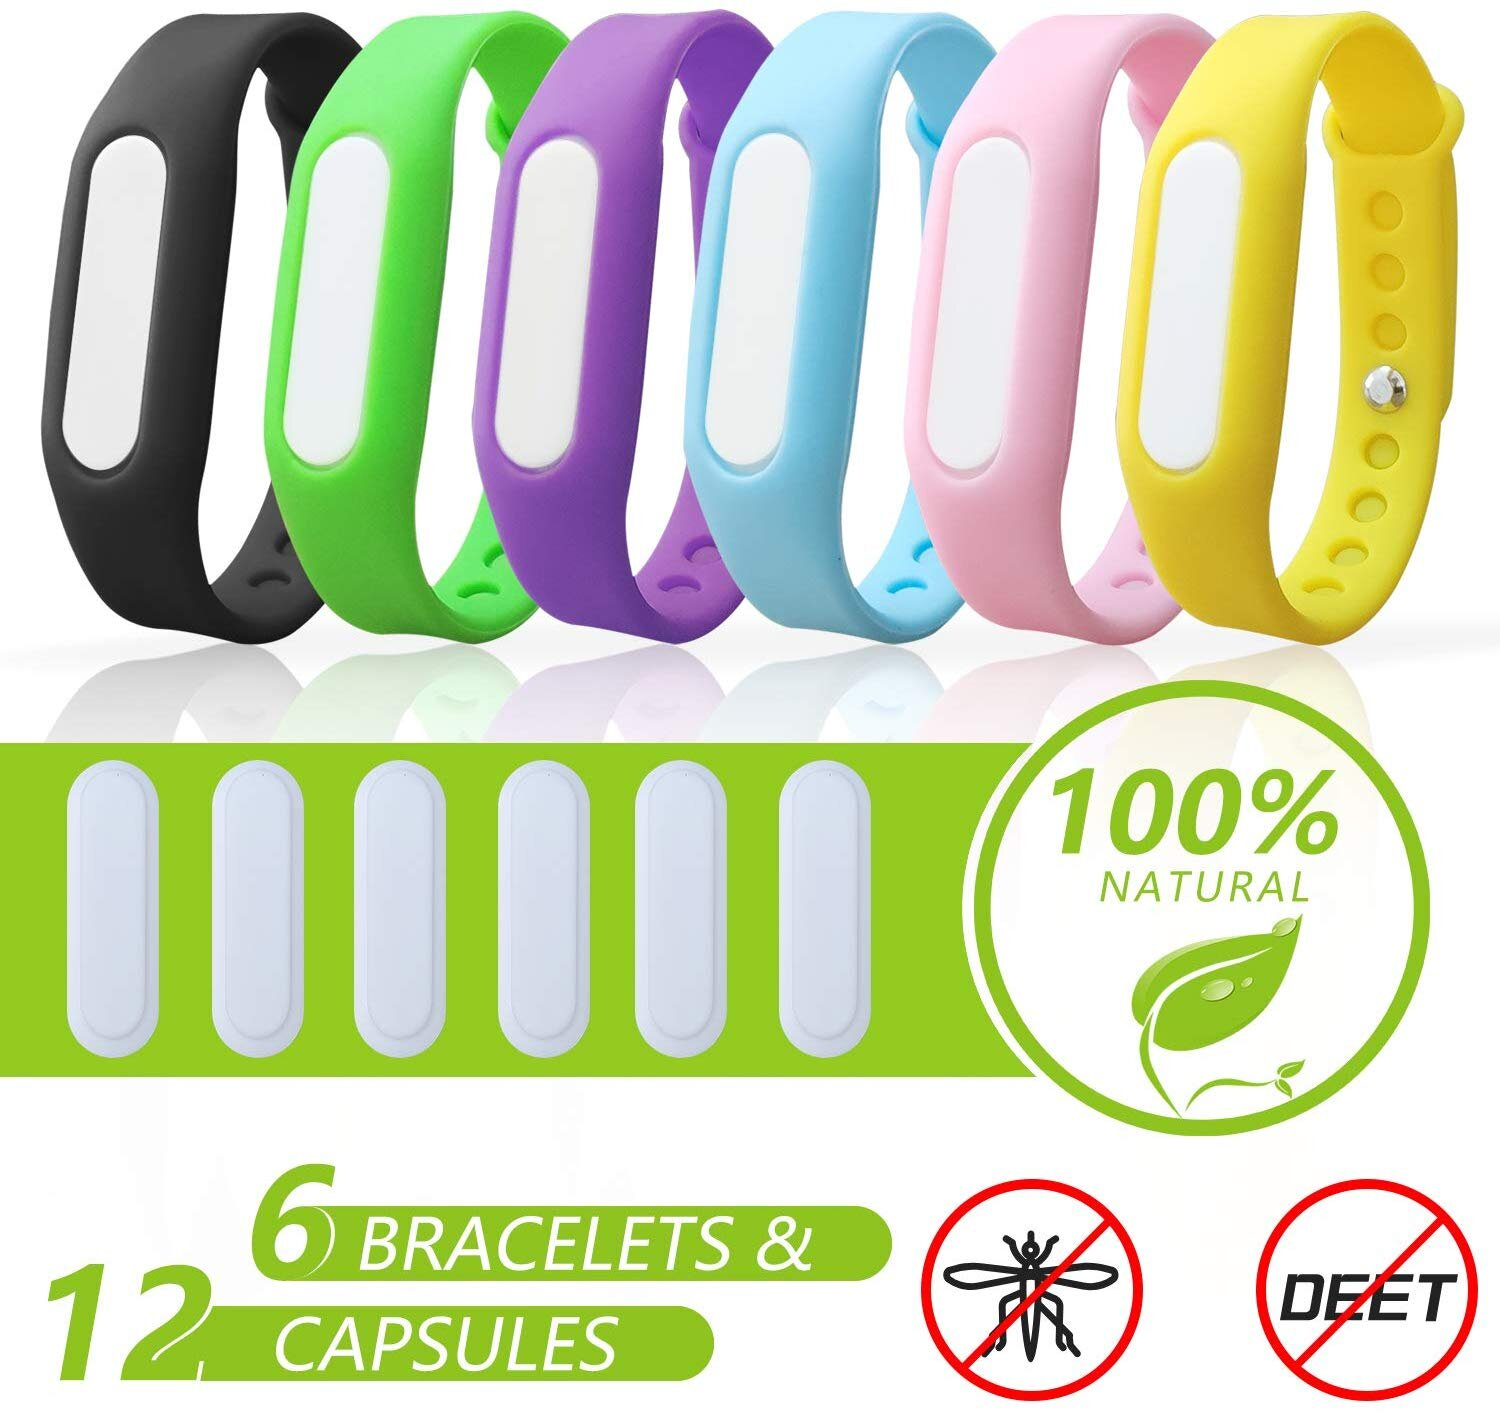 mosquito-repellent-bracelets-india-packing-list.jpg